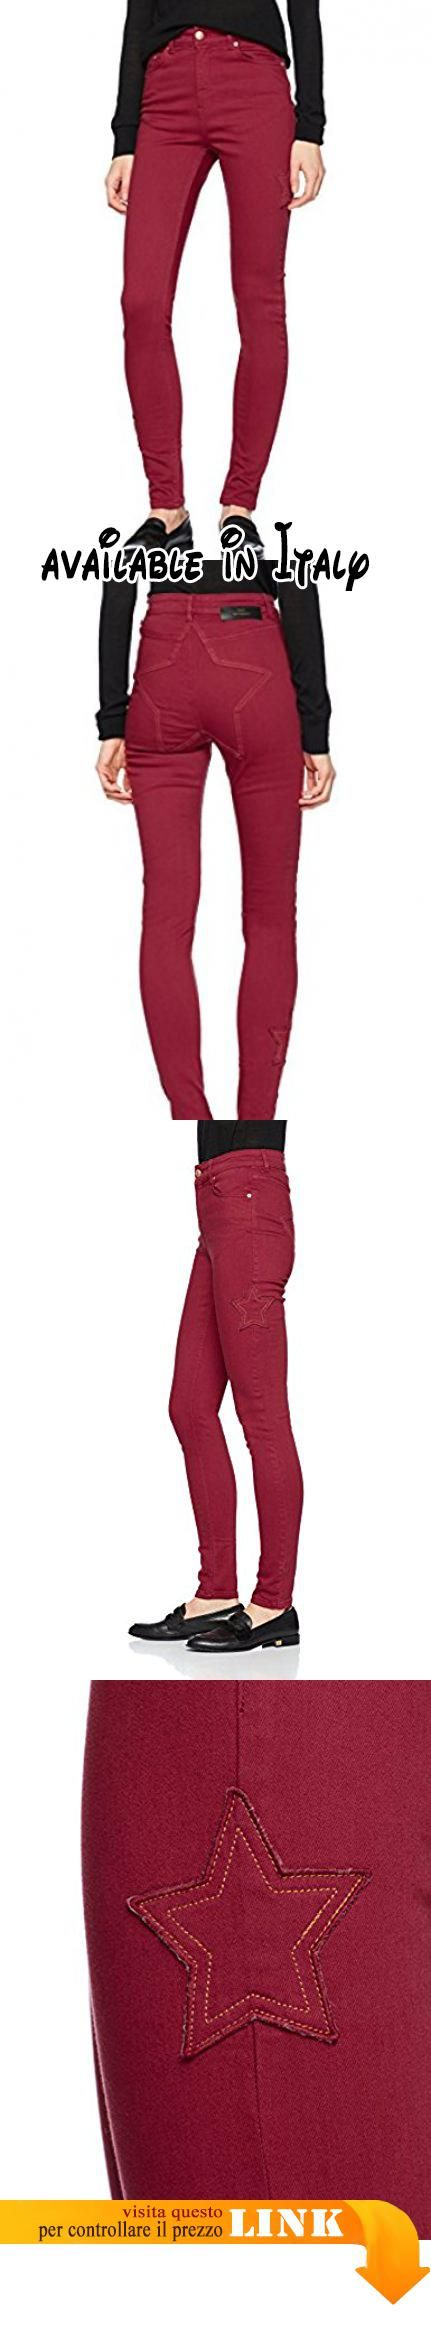 B0773SCWYH : Citizens of Humanity Da Donna High rise jeans a